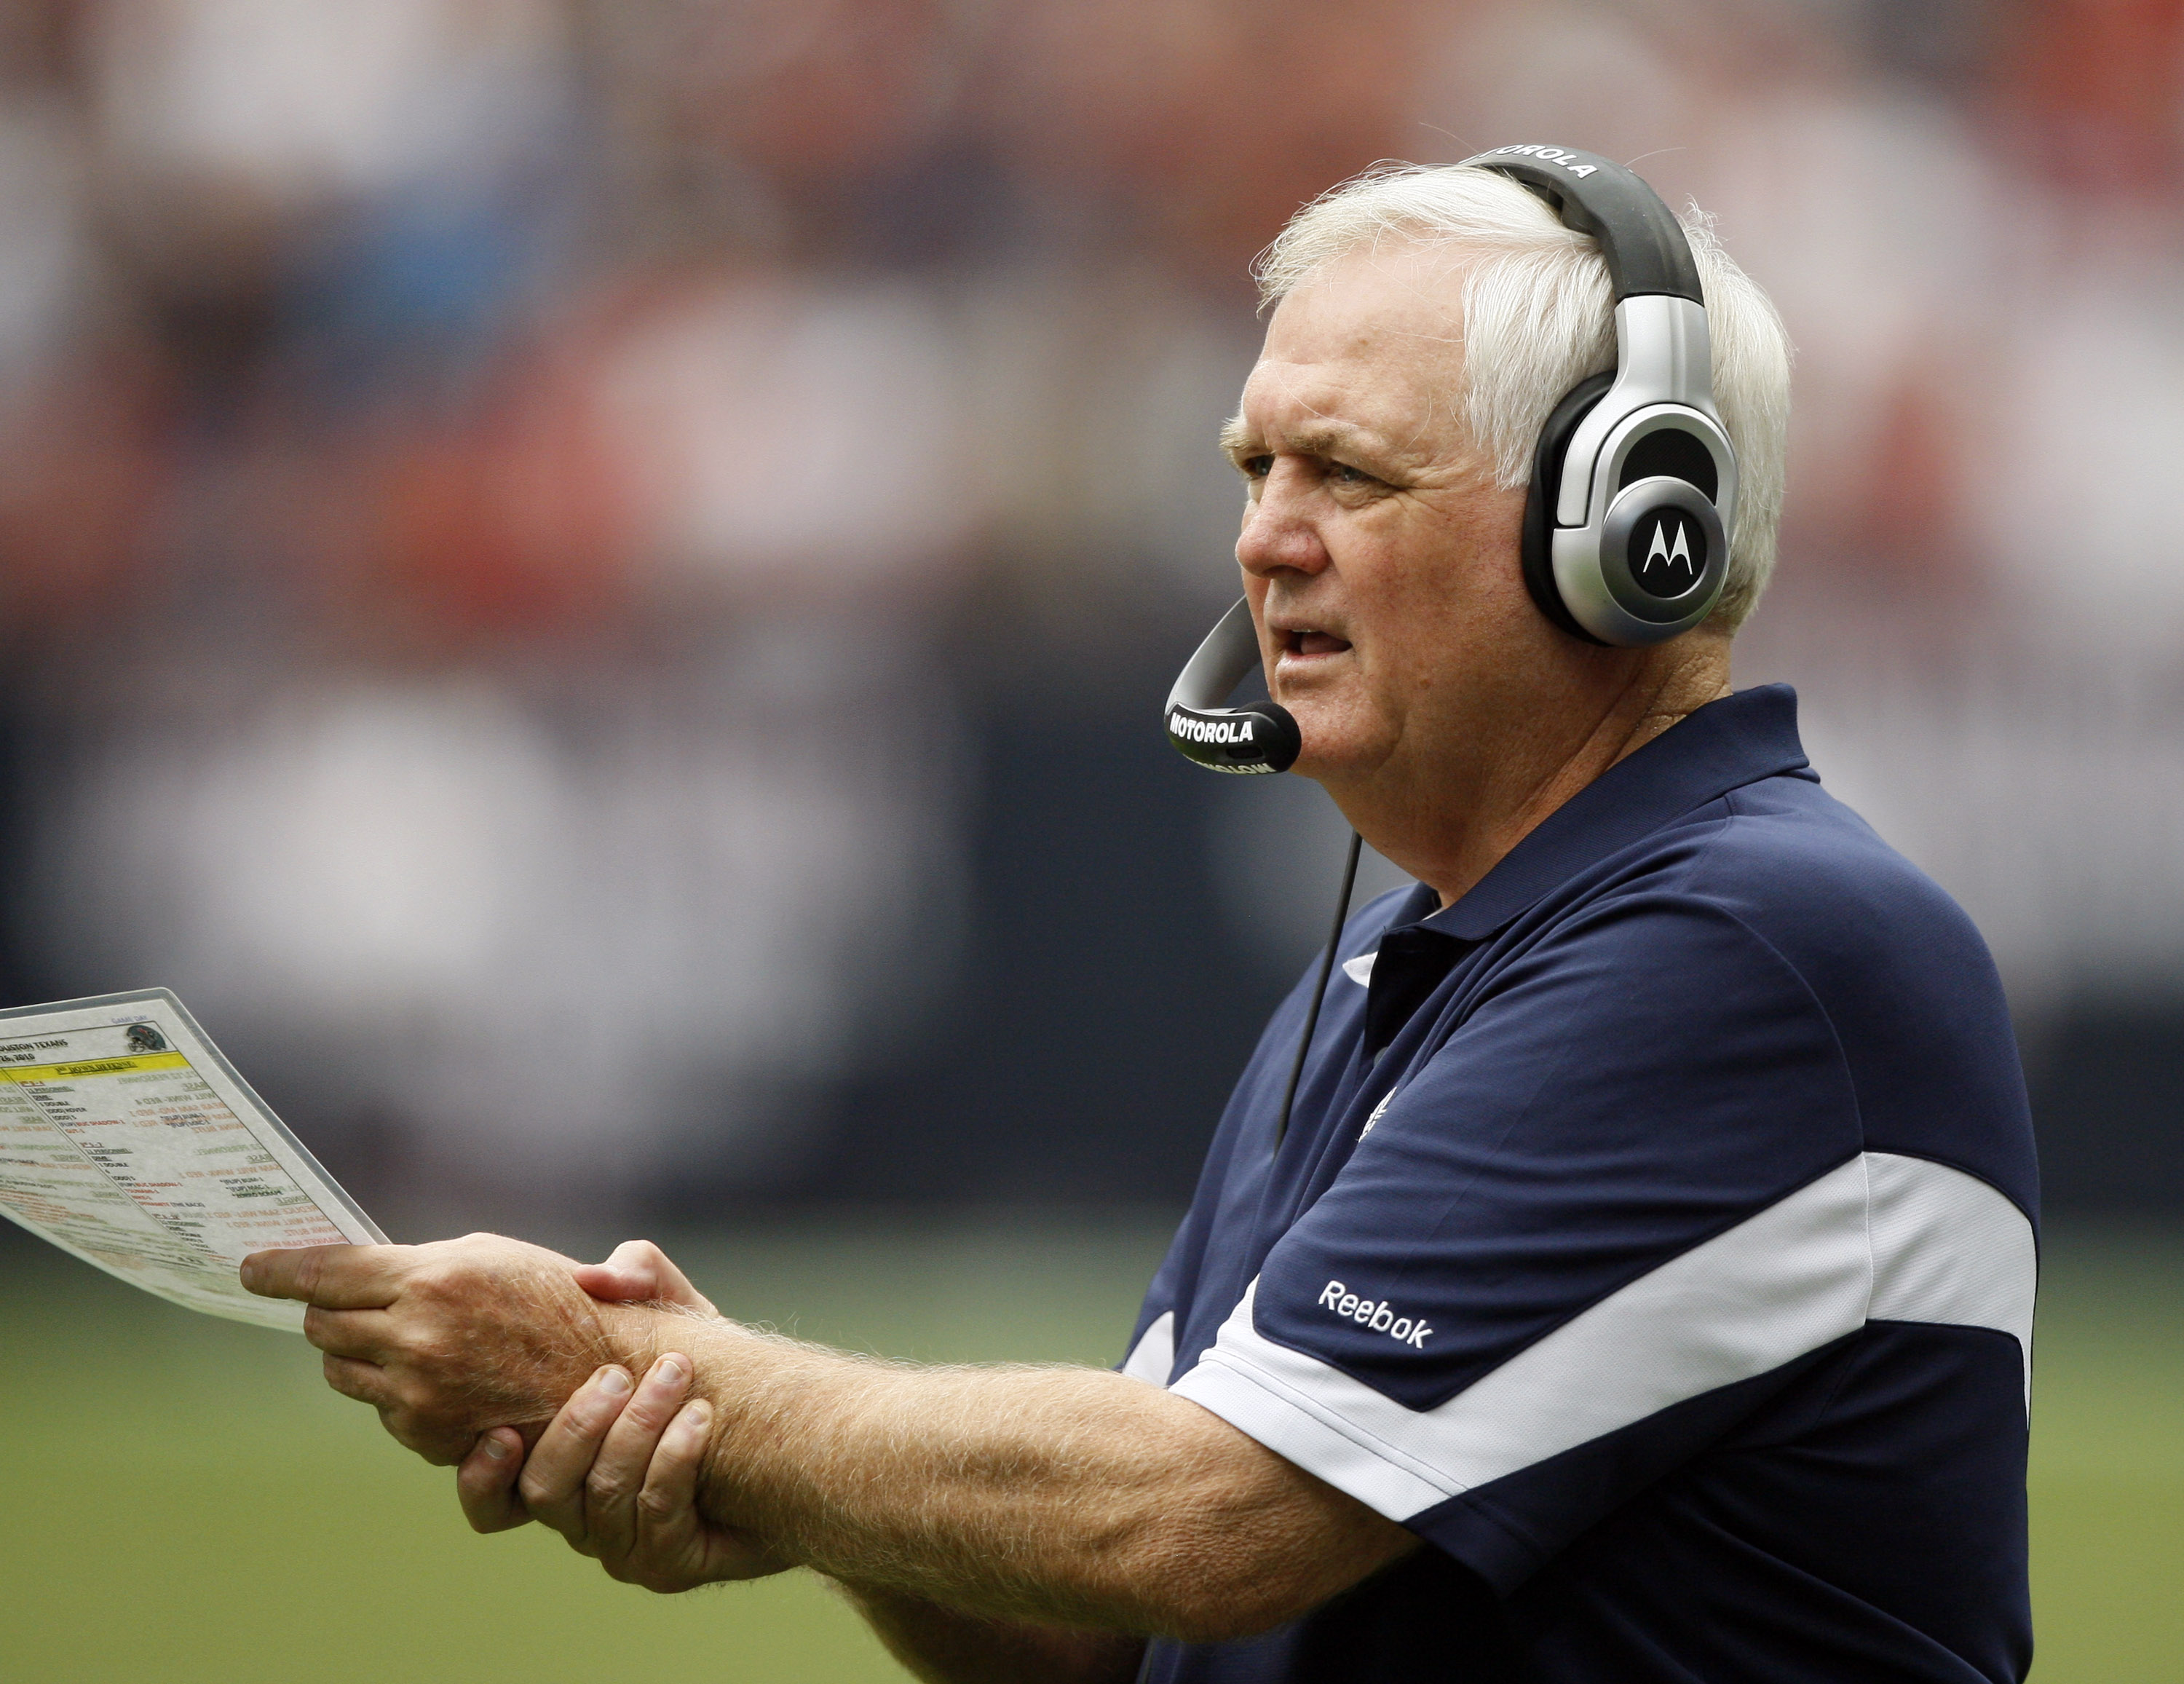 HOUSTON - SEPTEMBER 26:  Head coach Wade Phillips of the Dallas Cowboys looks on from the sideline during a football game against the Houston Texans  at Reliant Stadium on September 26, 2010 in Houston, Texas.  (Photo by Bob Levey/Getty Images)